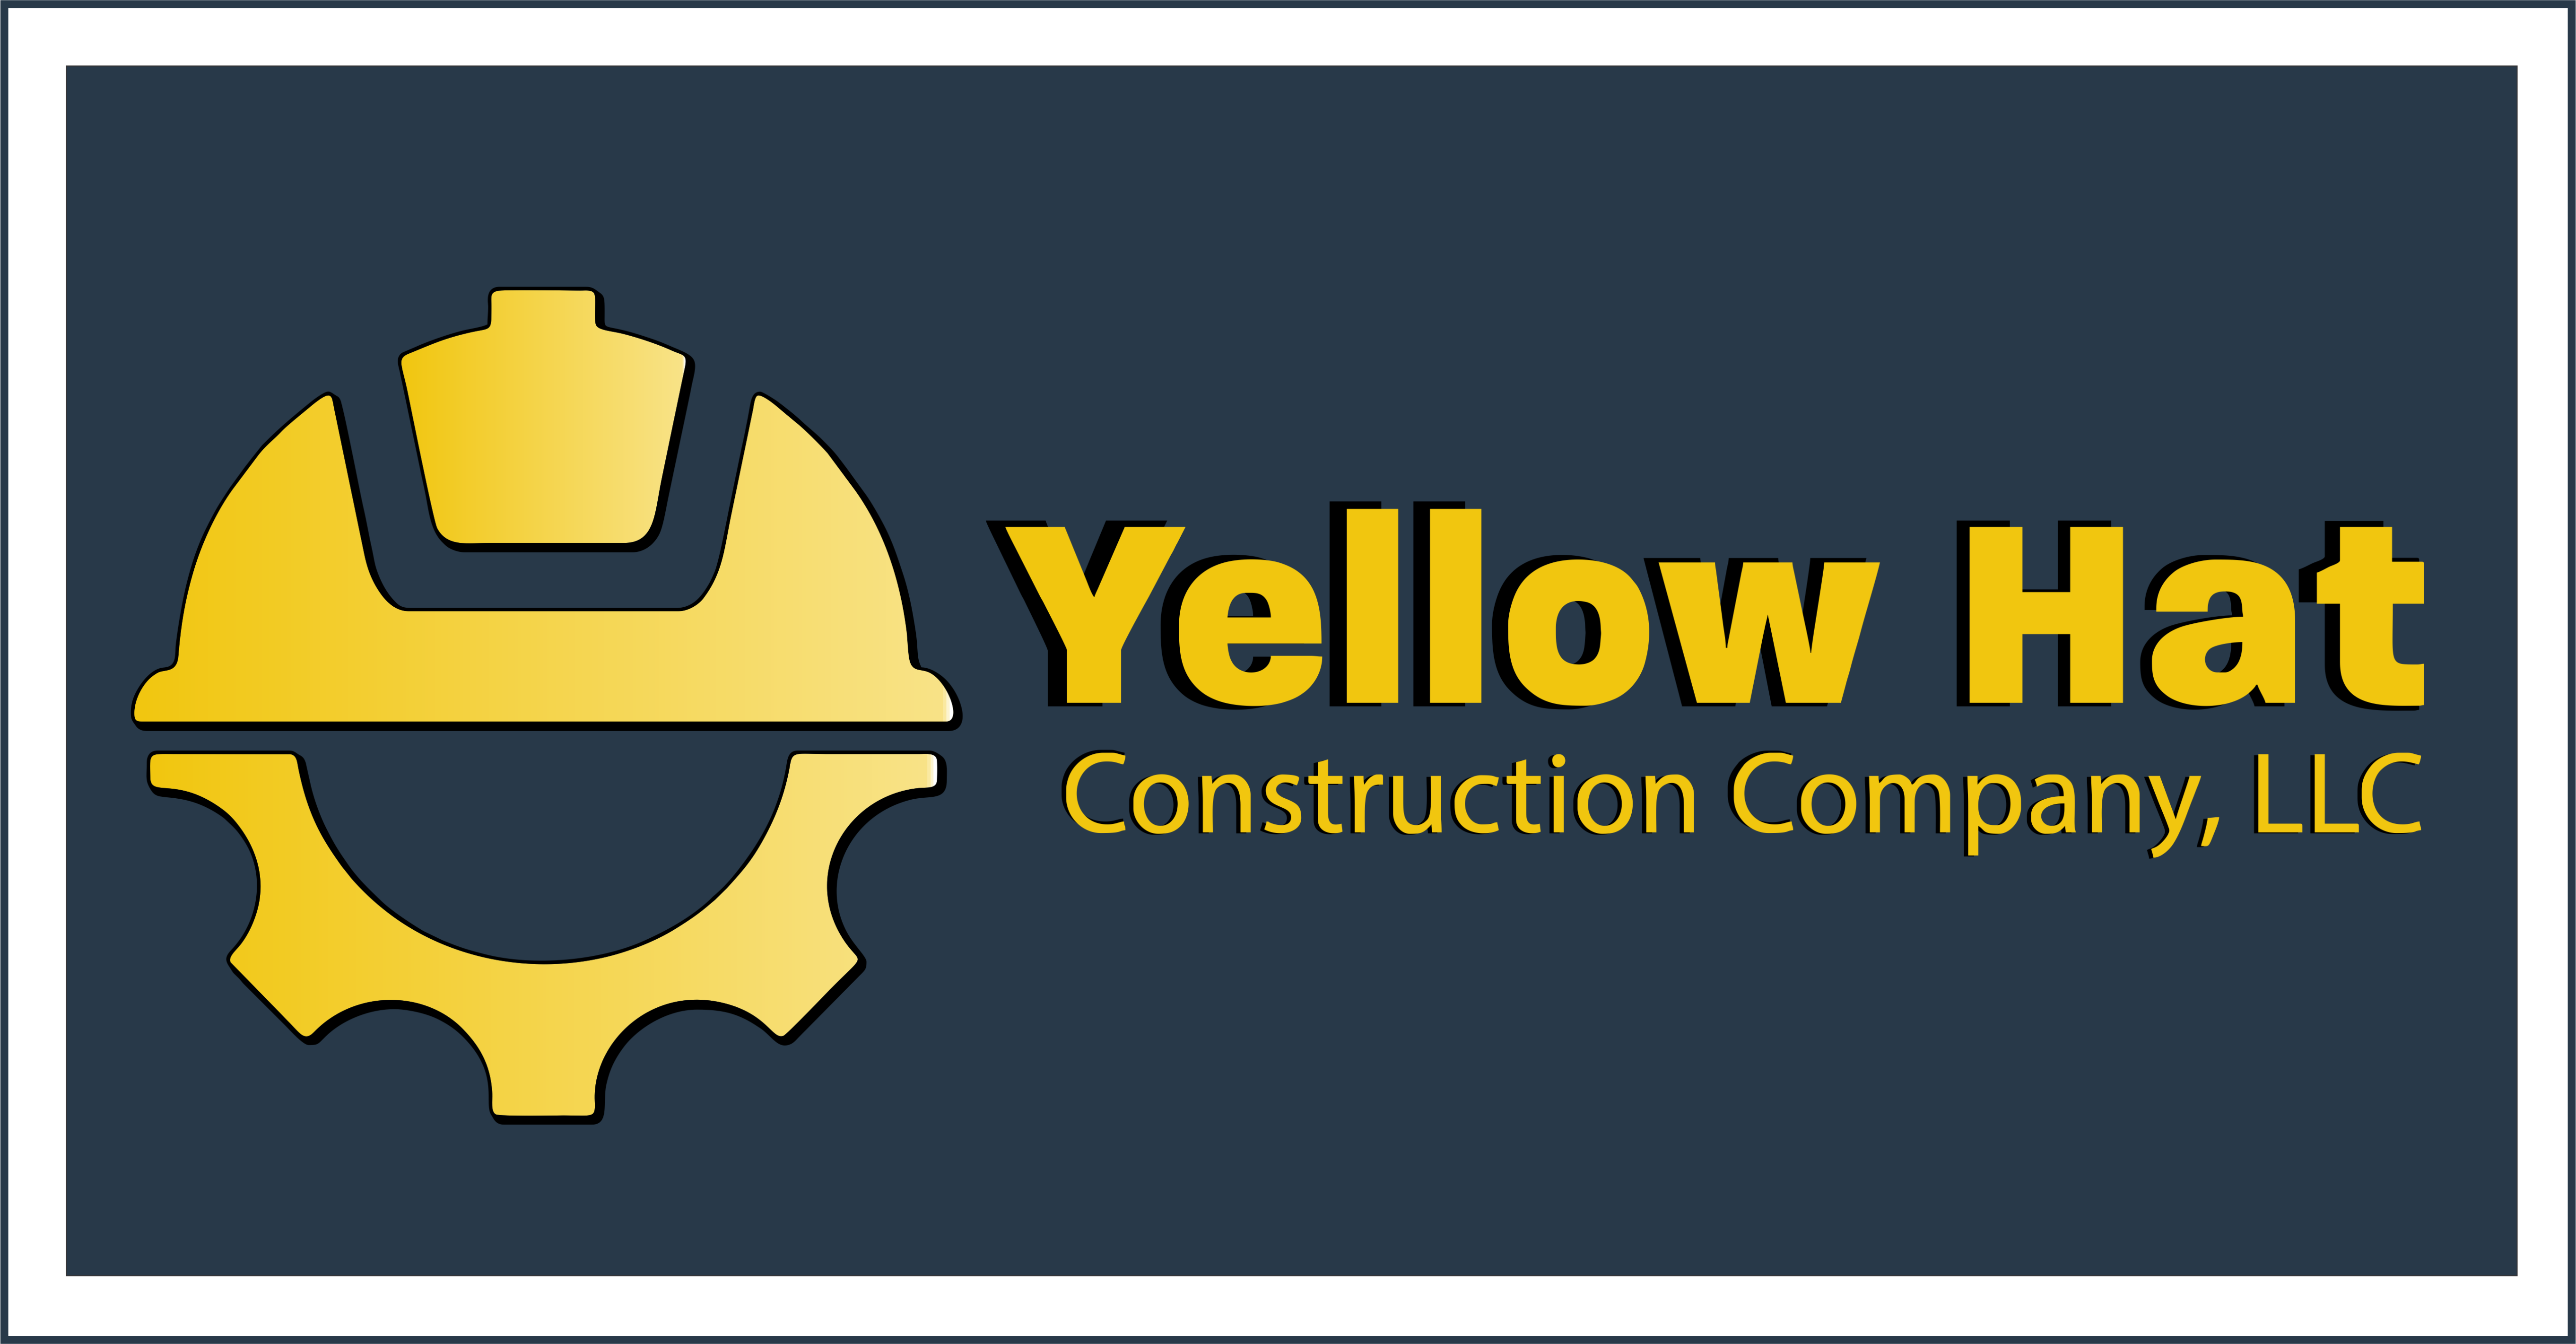 Yellow Hat Construction Company, LLC